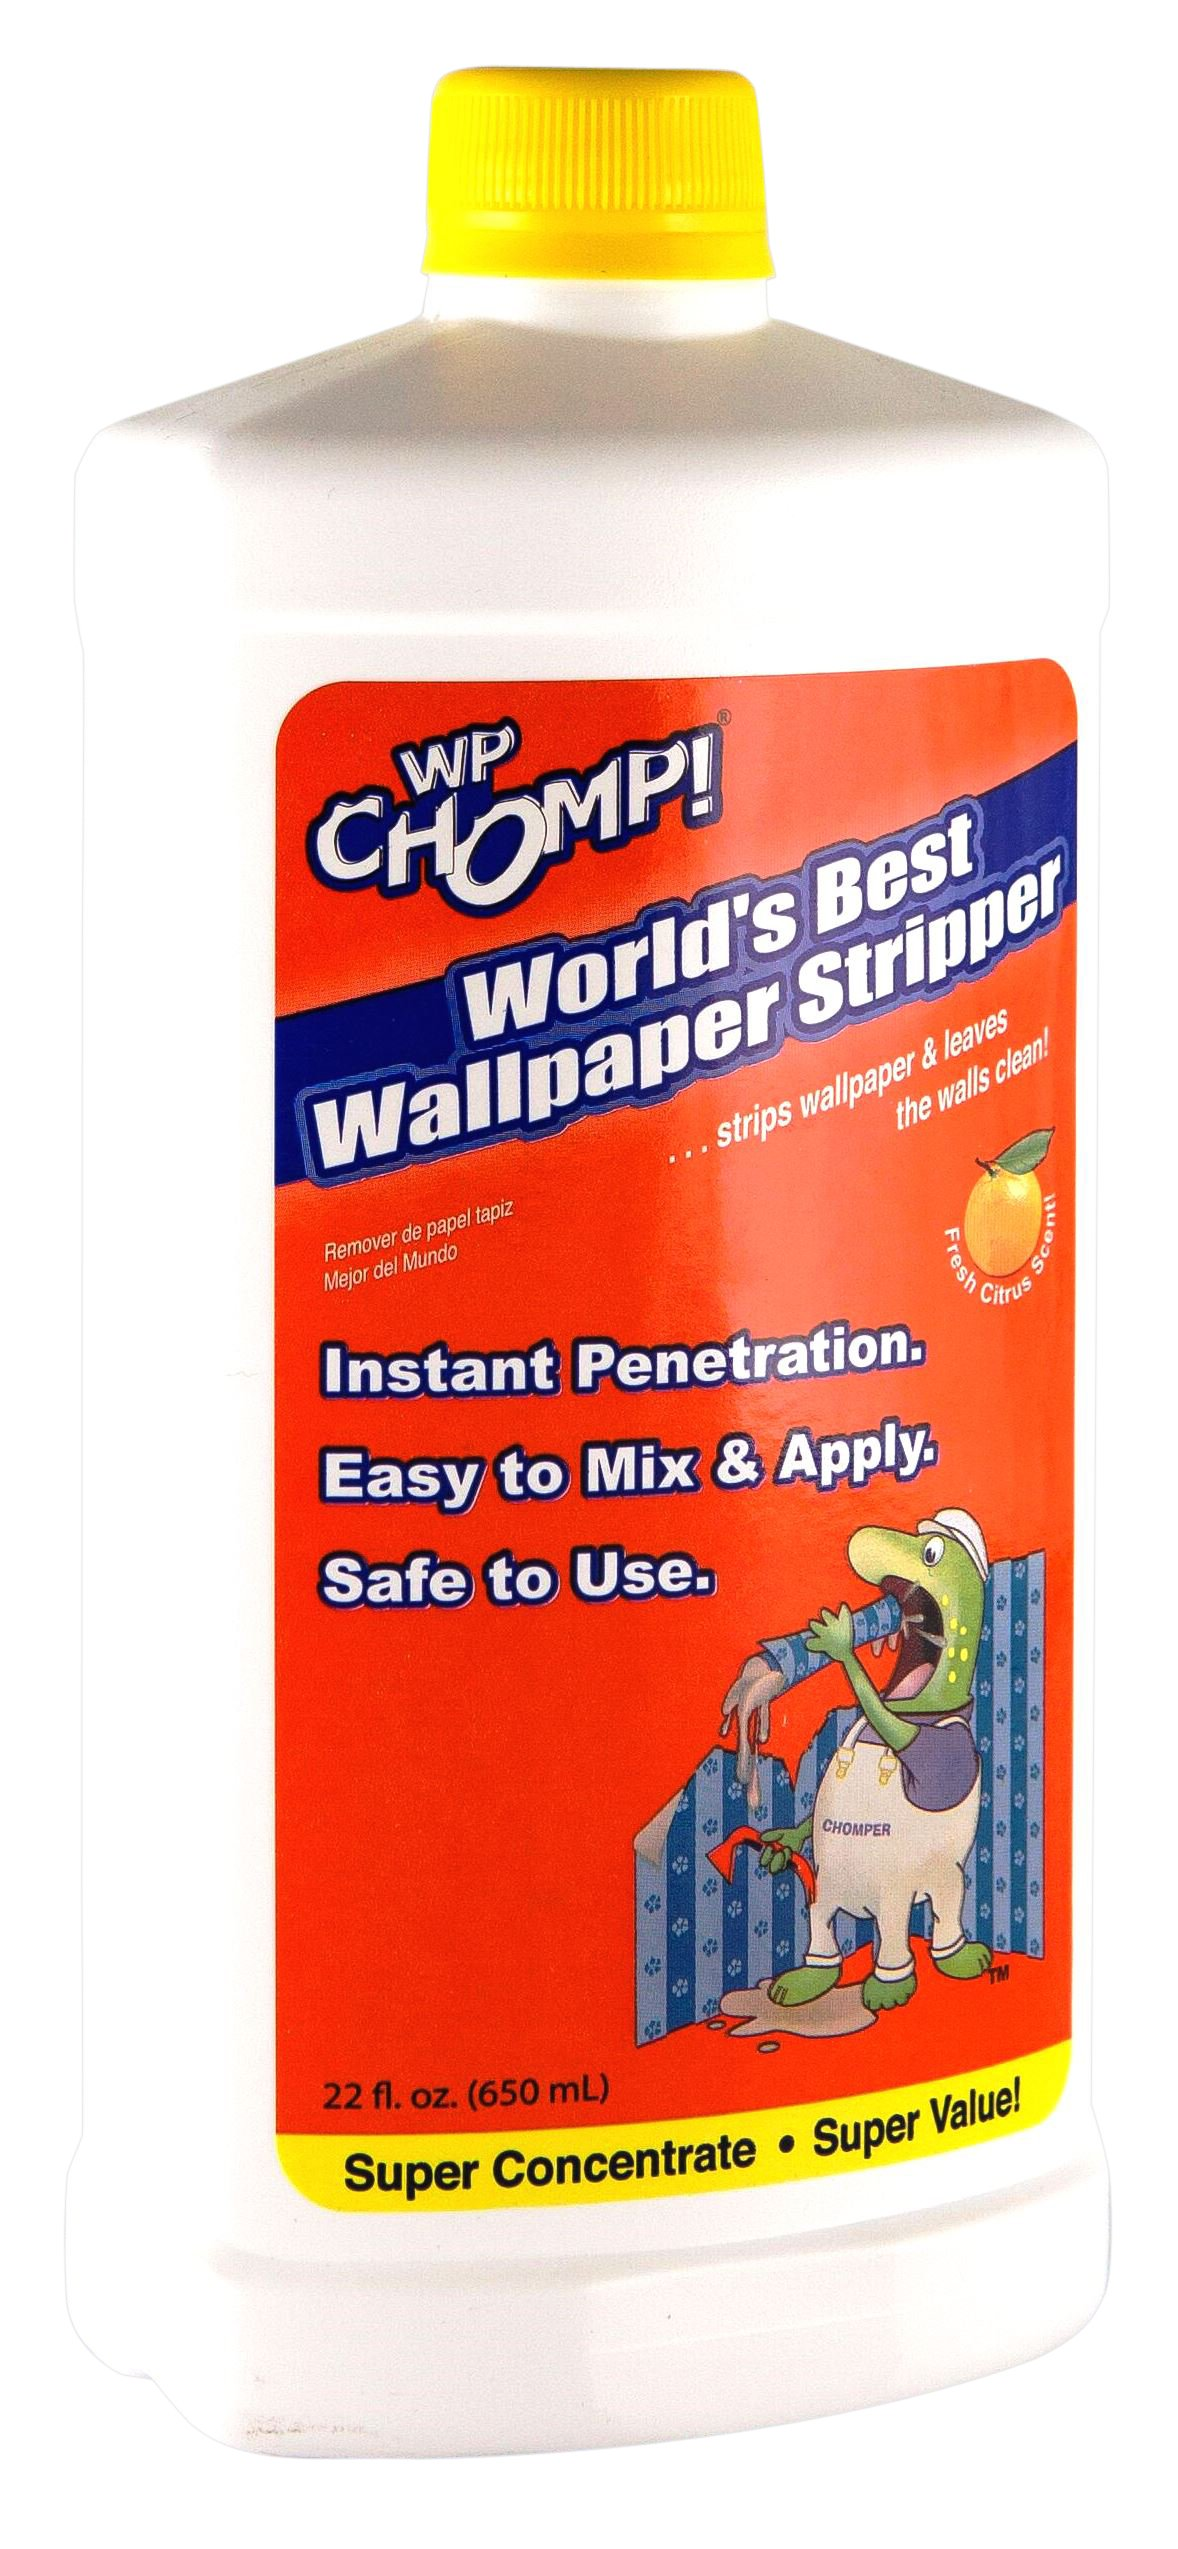 WP Chomp Worlds Best Wallpaper Stripper and Sticky Paste Remover, Citrus Scent 22oz Super Concentrate